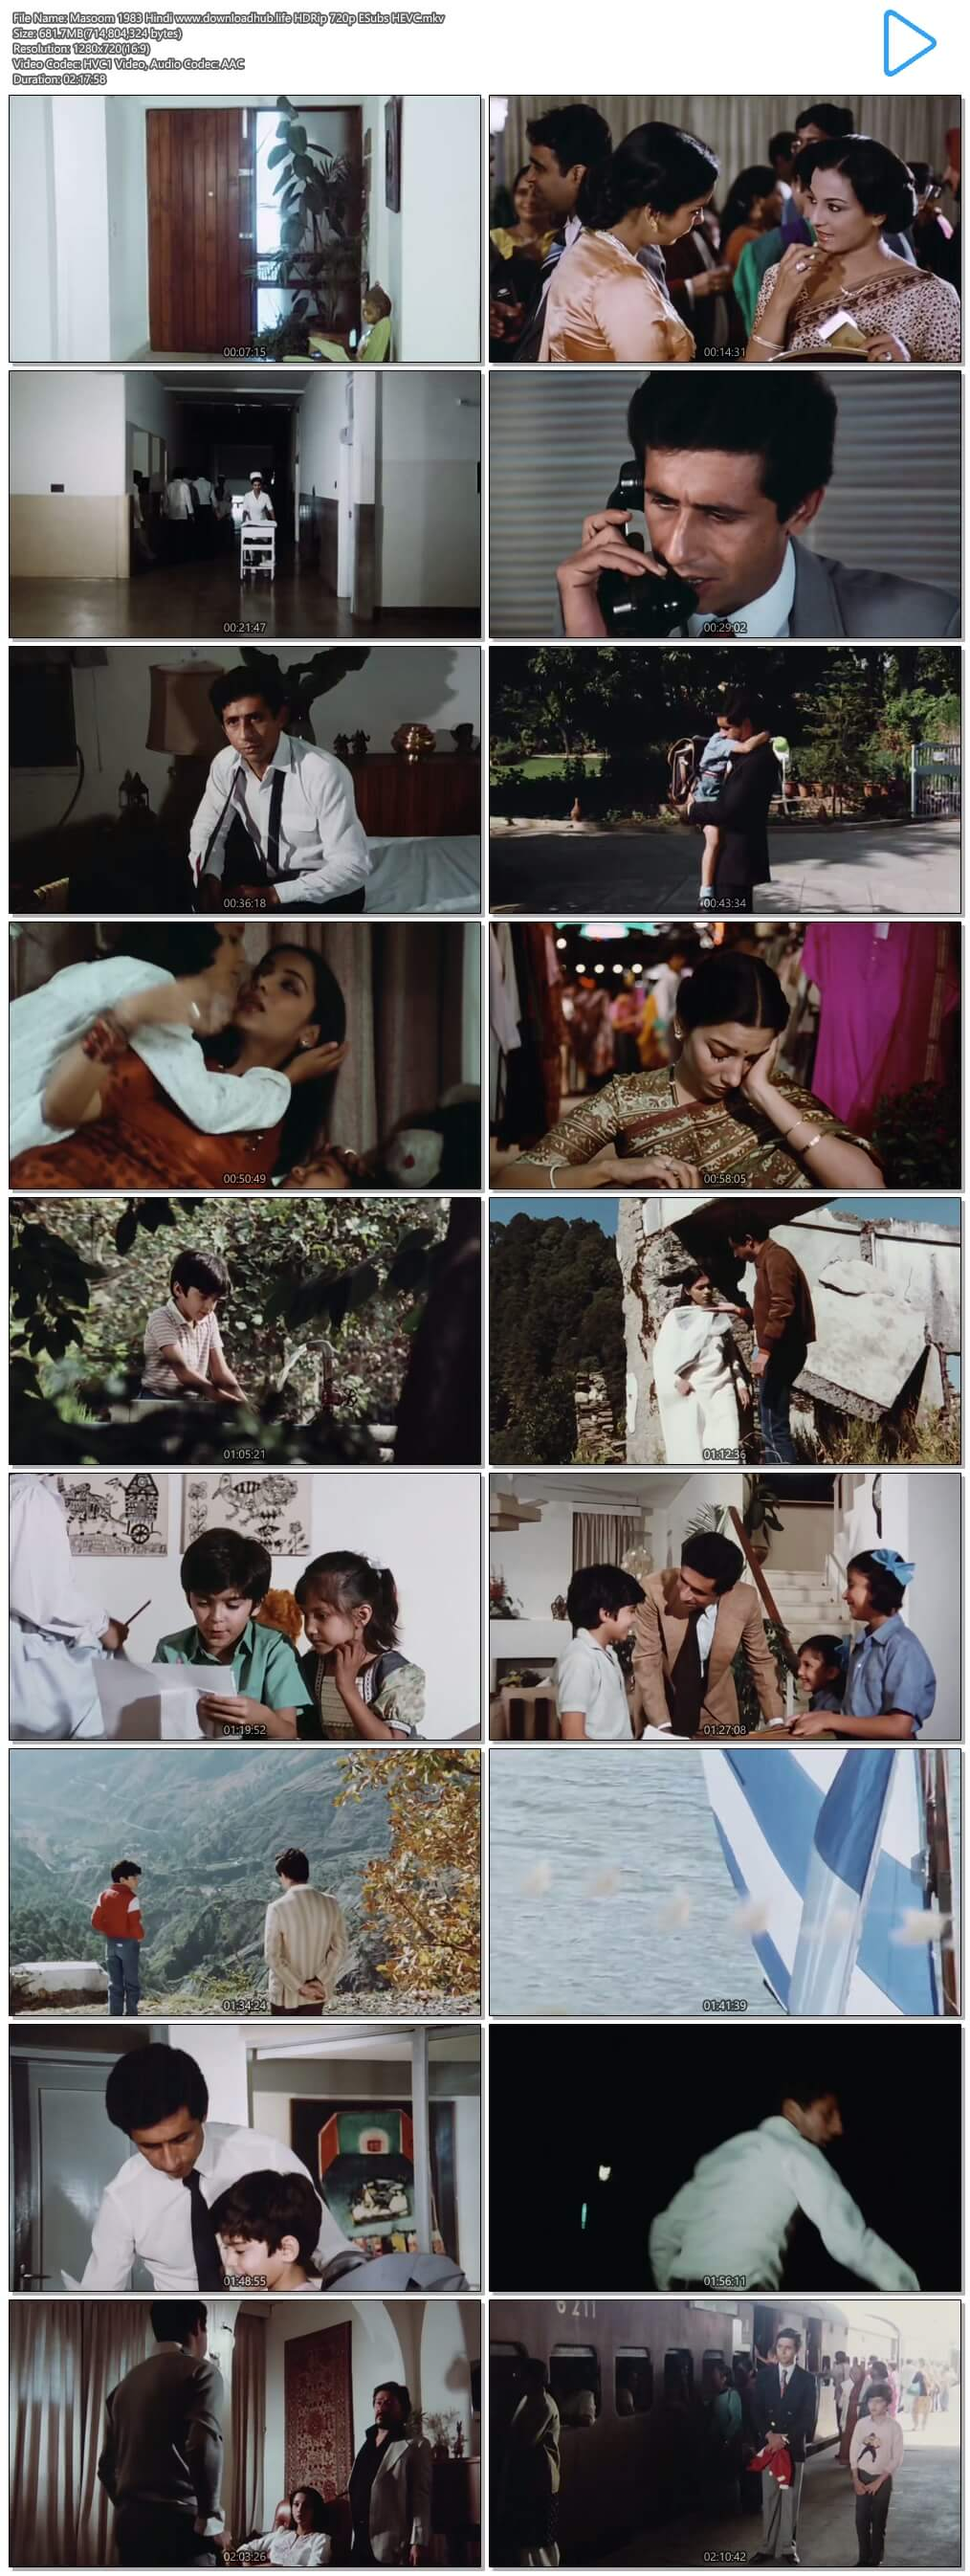 Masoom 1983 Hindi 650MB HDRip 720p ESubs HEVC